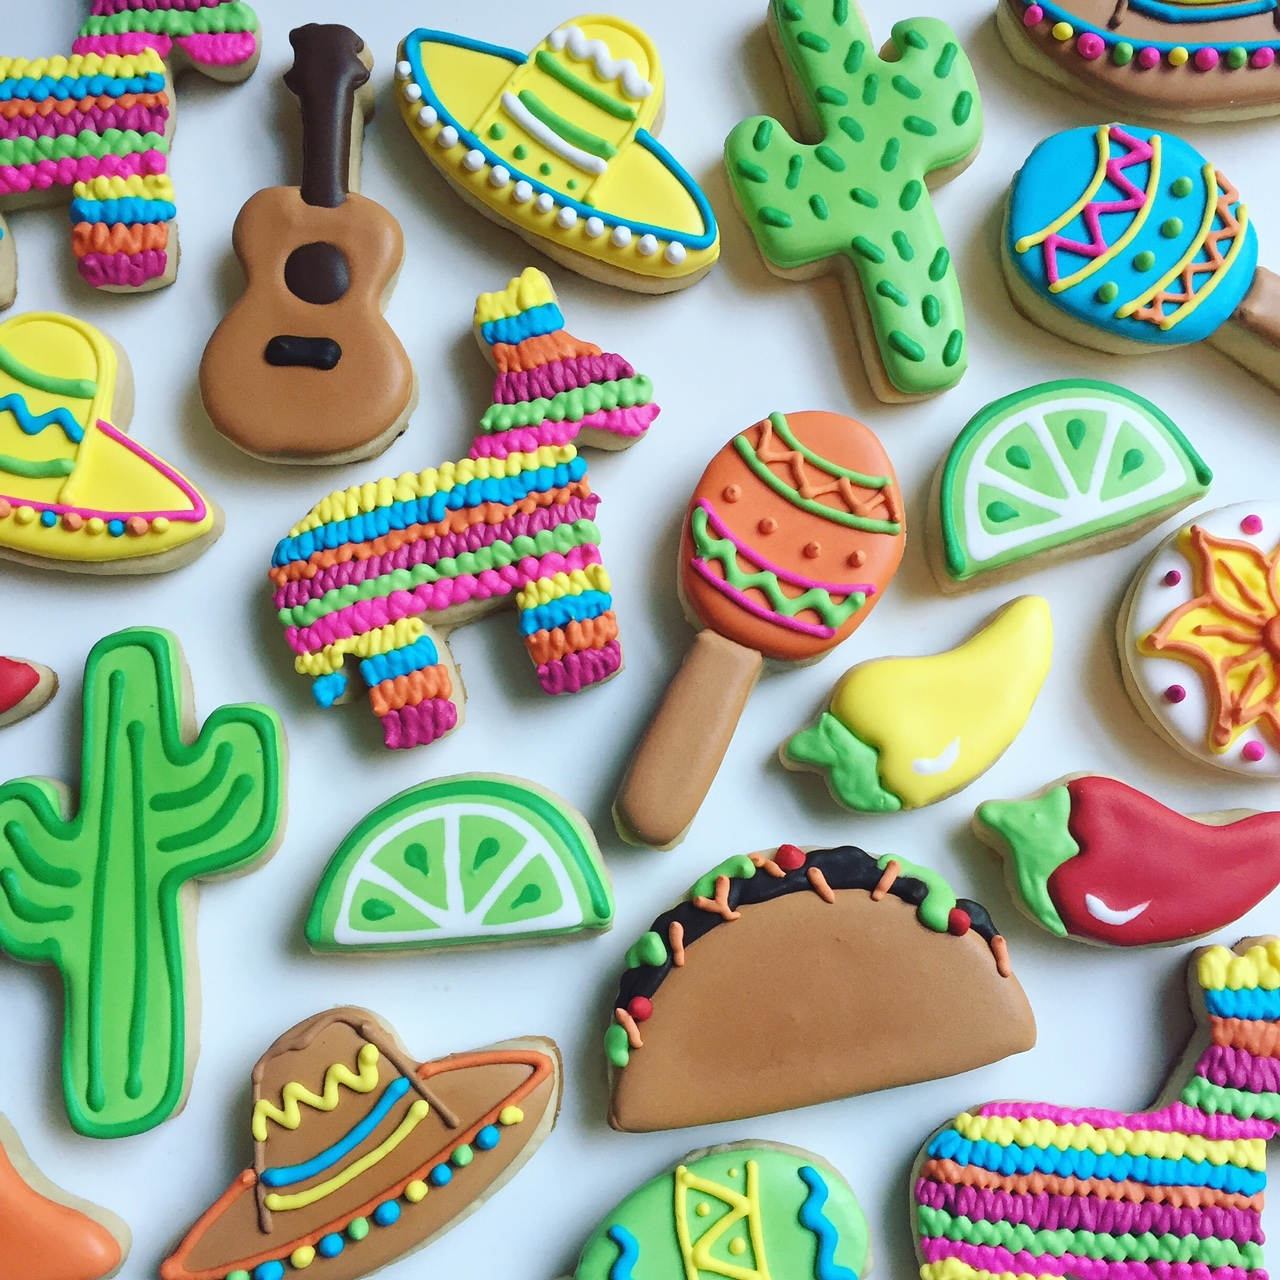 10 genius cookie decorating hacks your kids can easily master